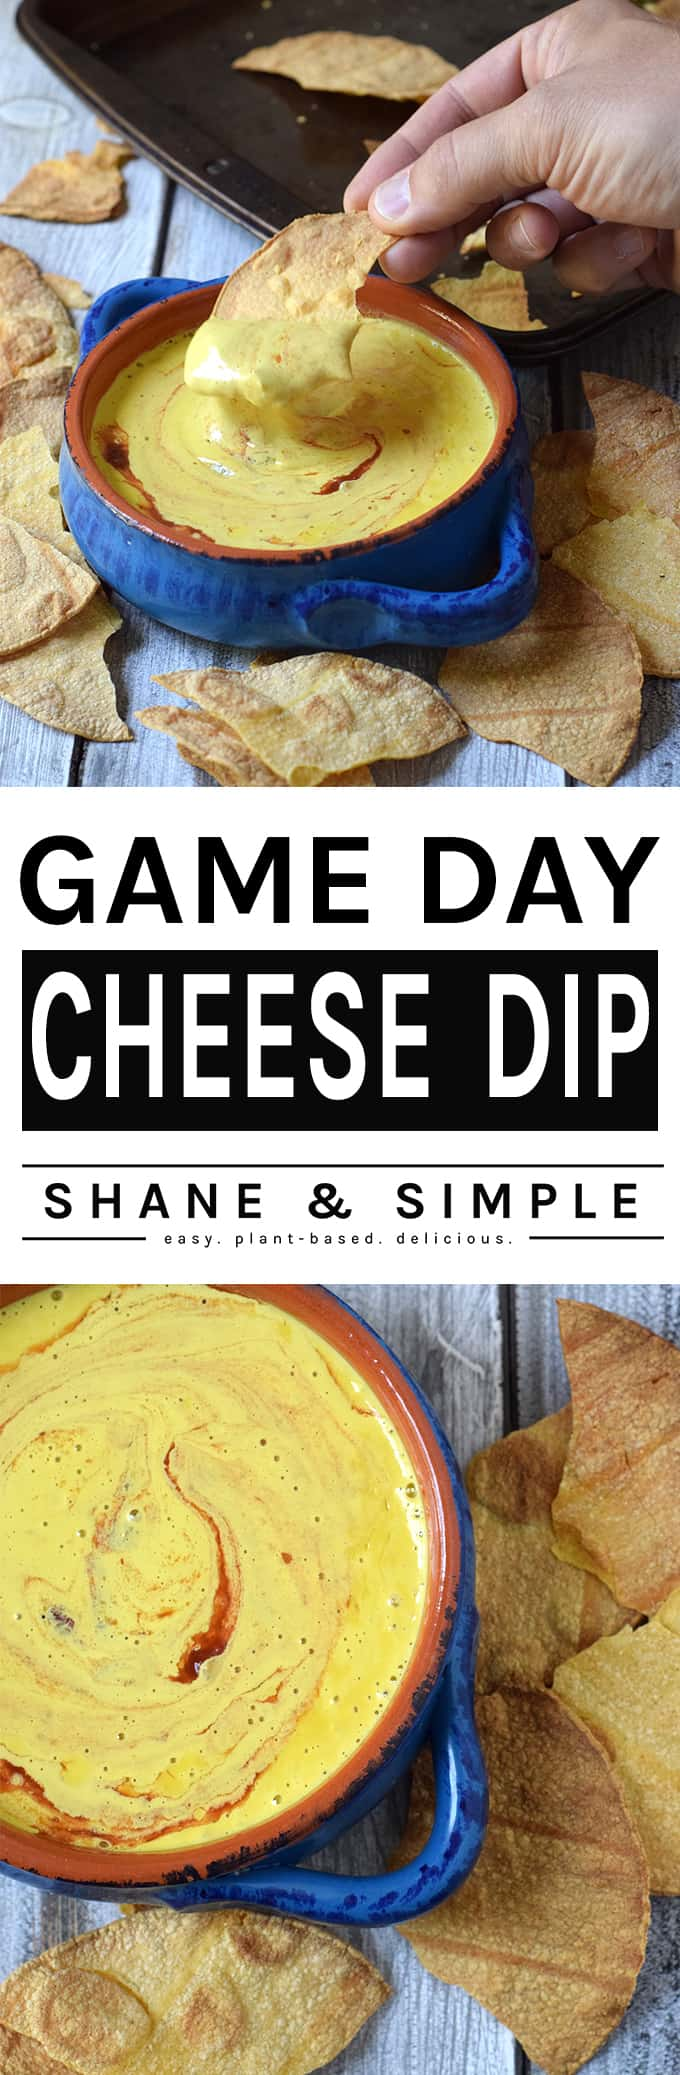 Game Day Cheese Dip